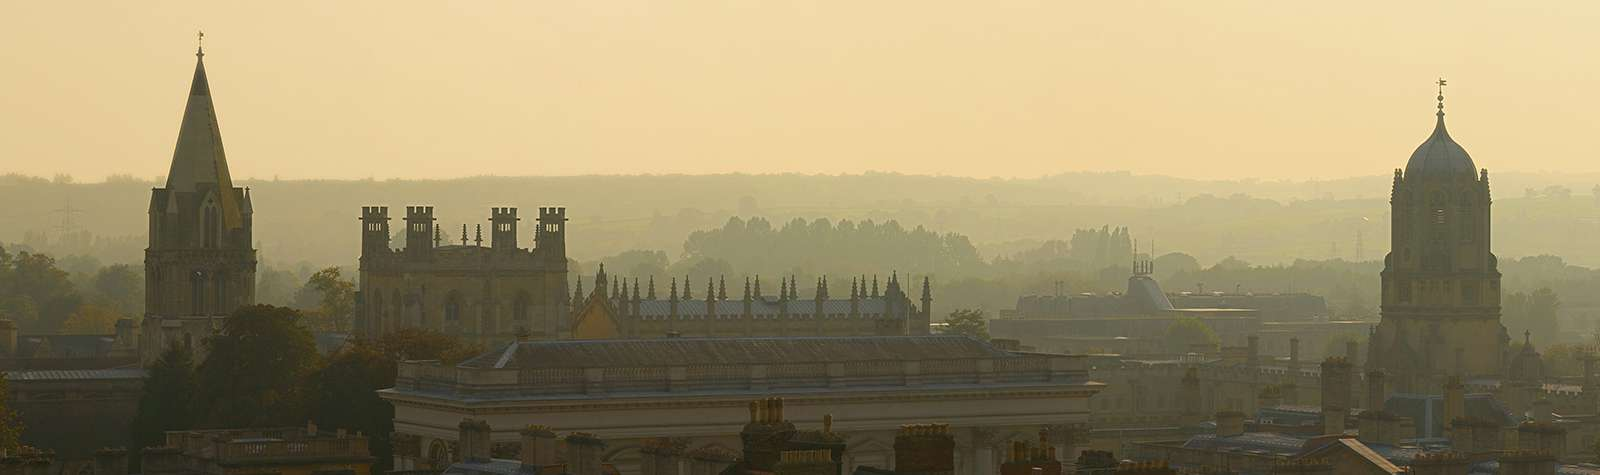 The Value Web at Oxford on Climate's issues